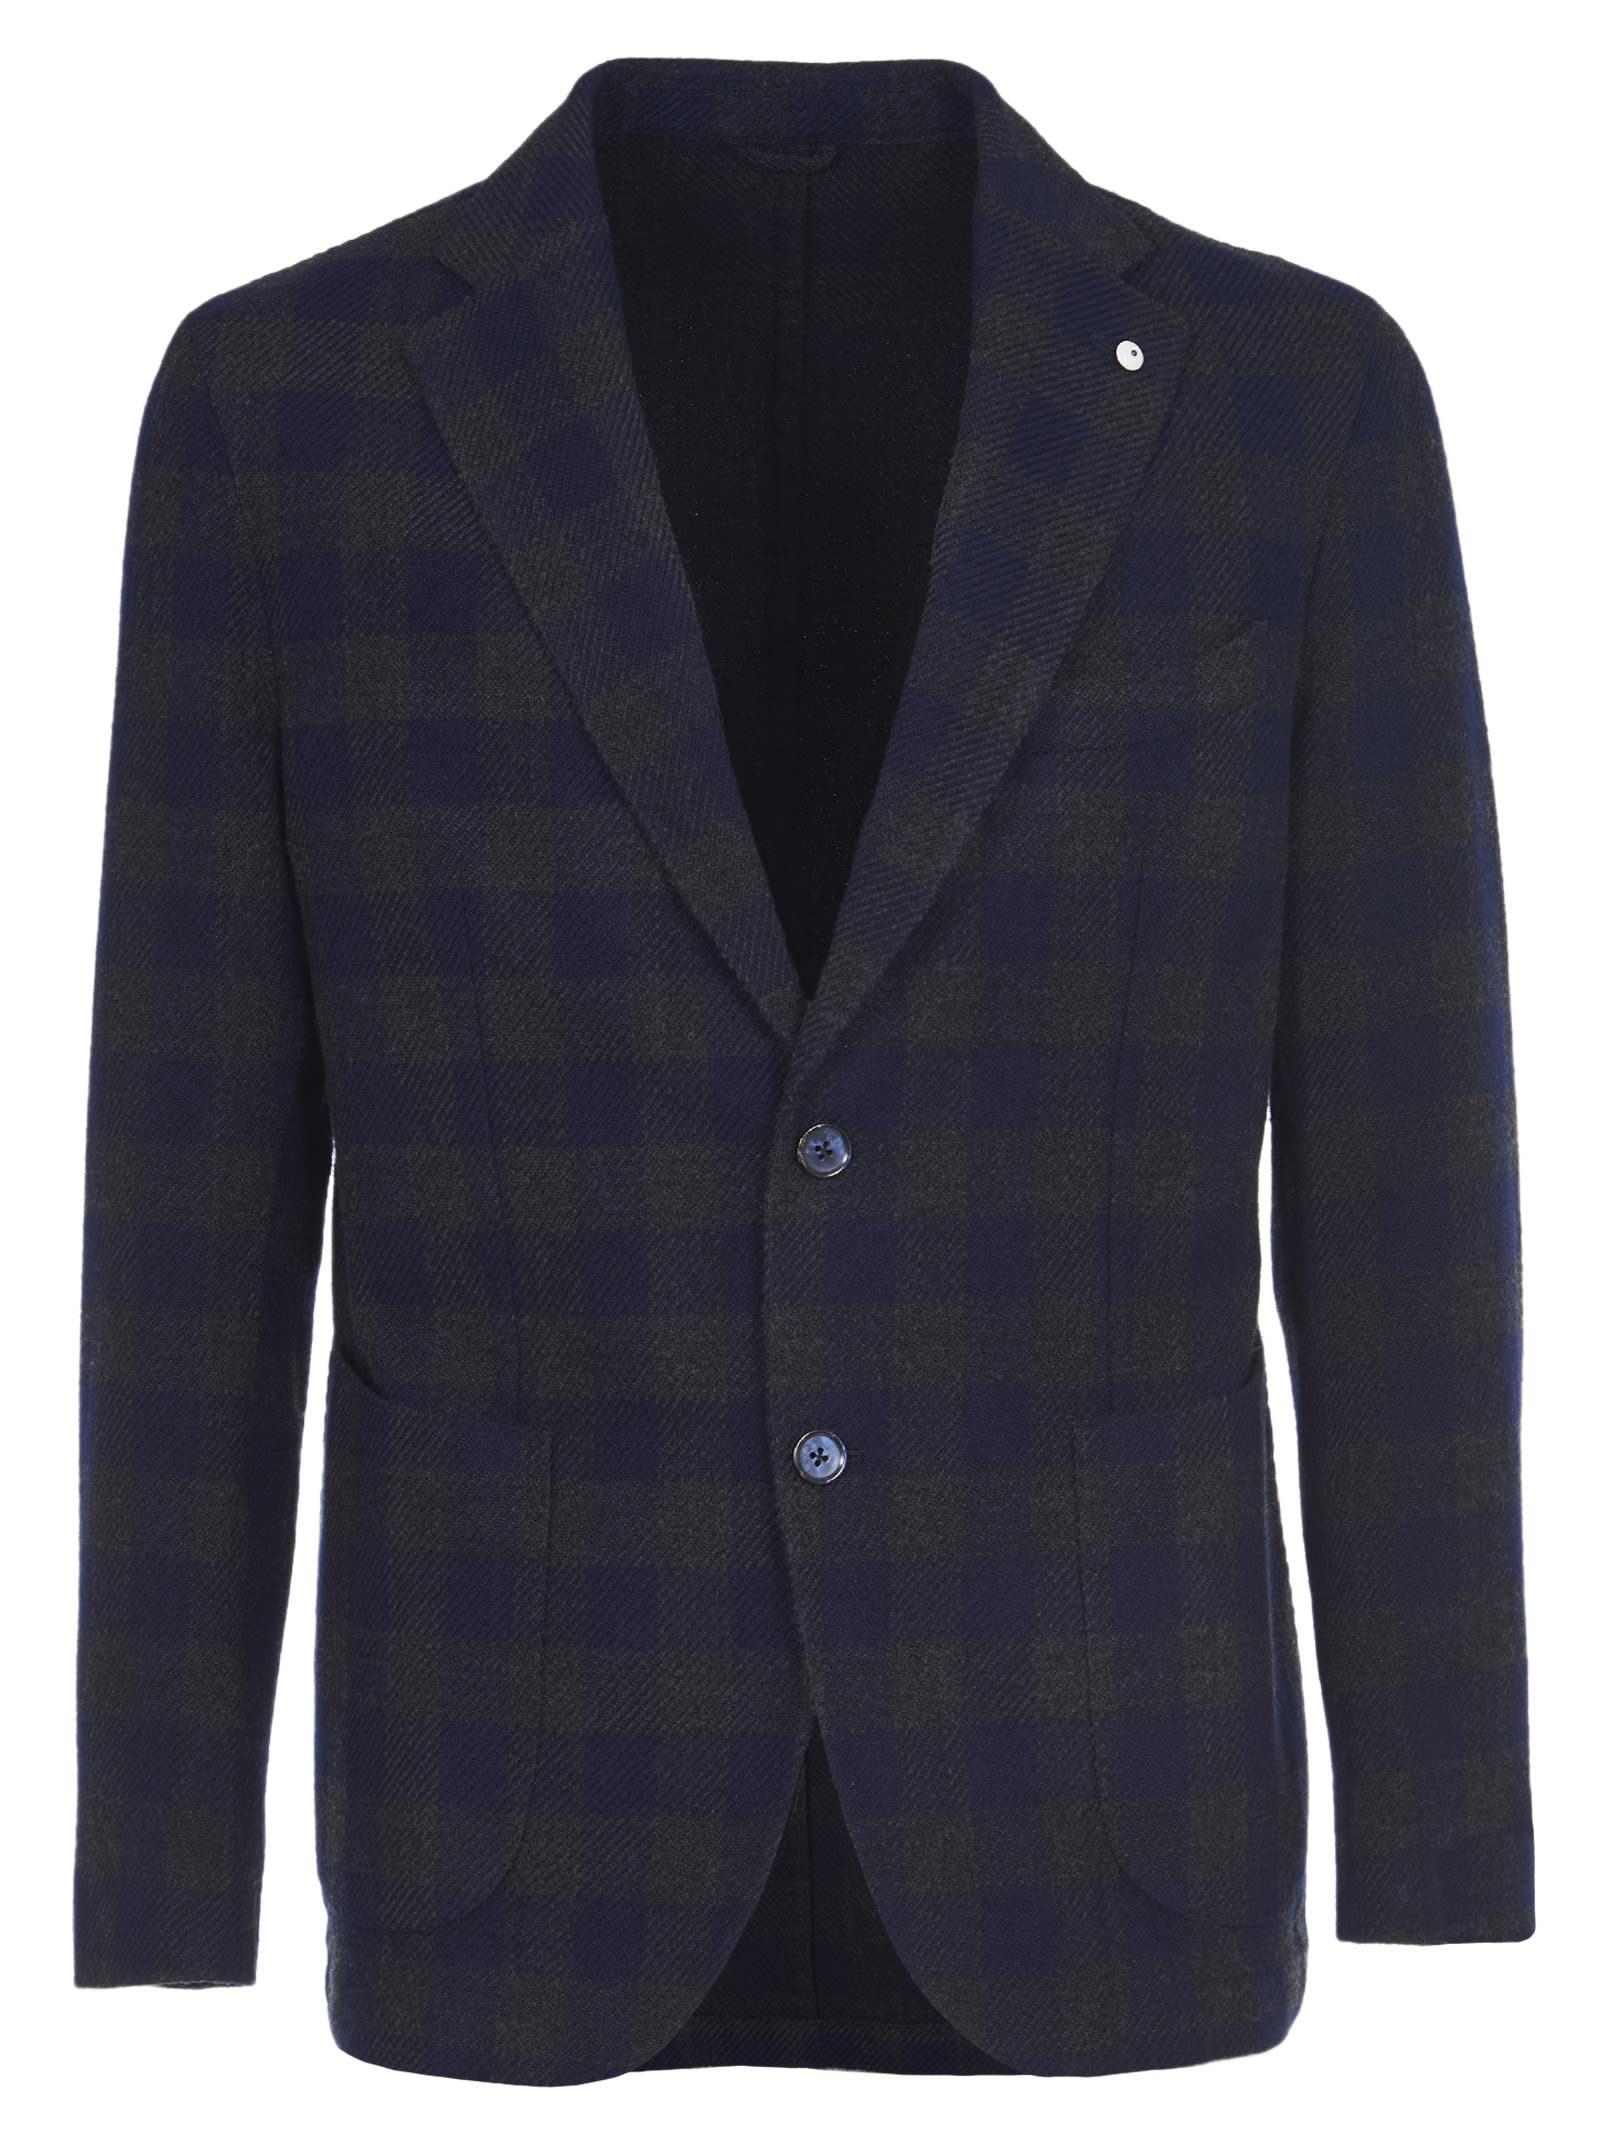 1911 Blue And Green Checkered Jacket